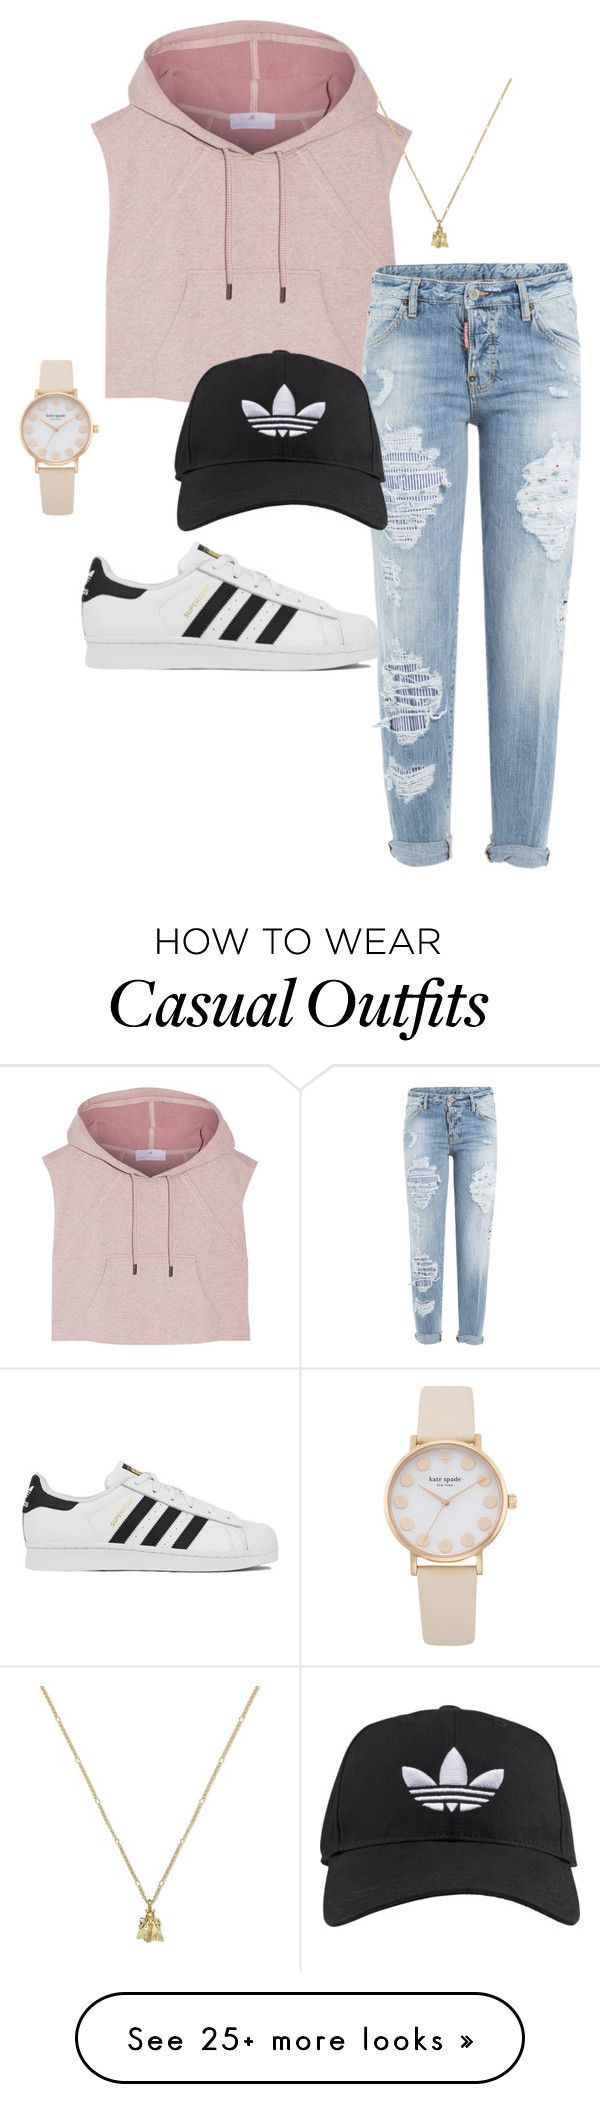 """Casual Tumblr"" by lizziecullen6 on Polyvore featuring moda, adidas, Dsquared2 e Gucci"